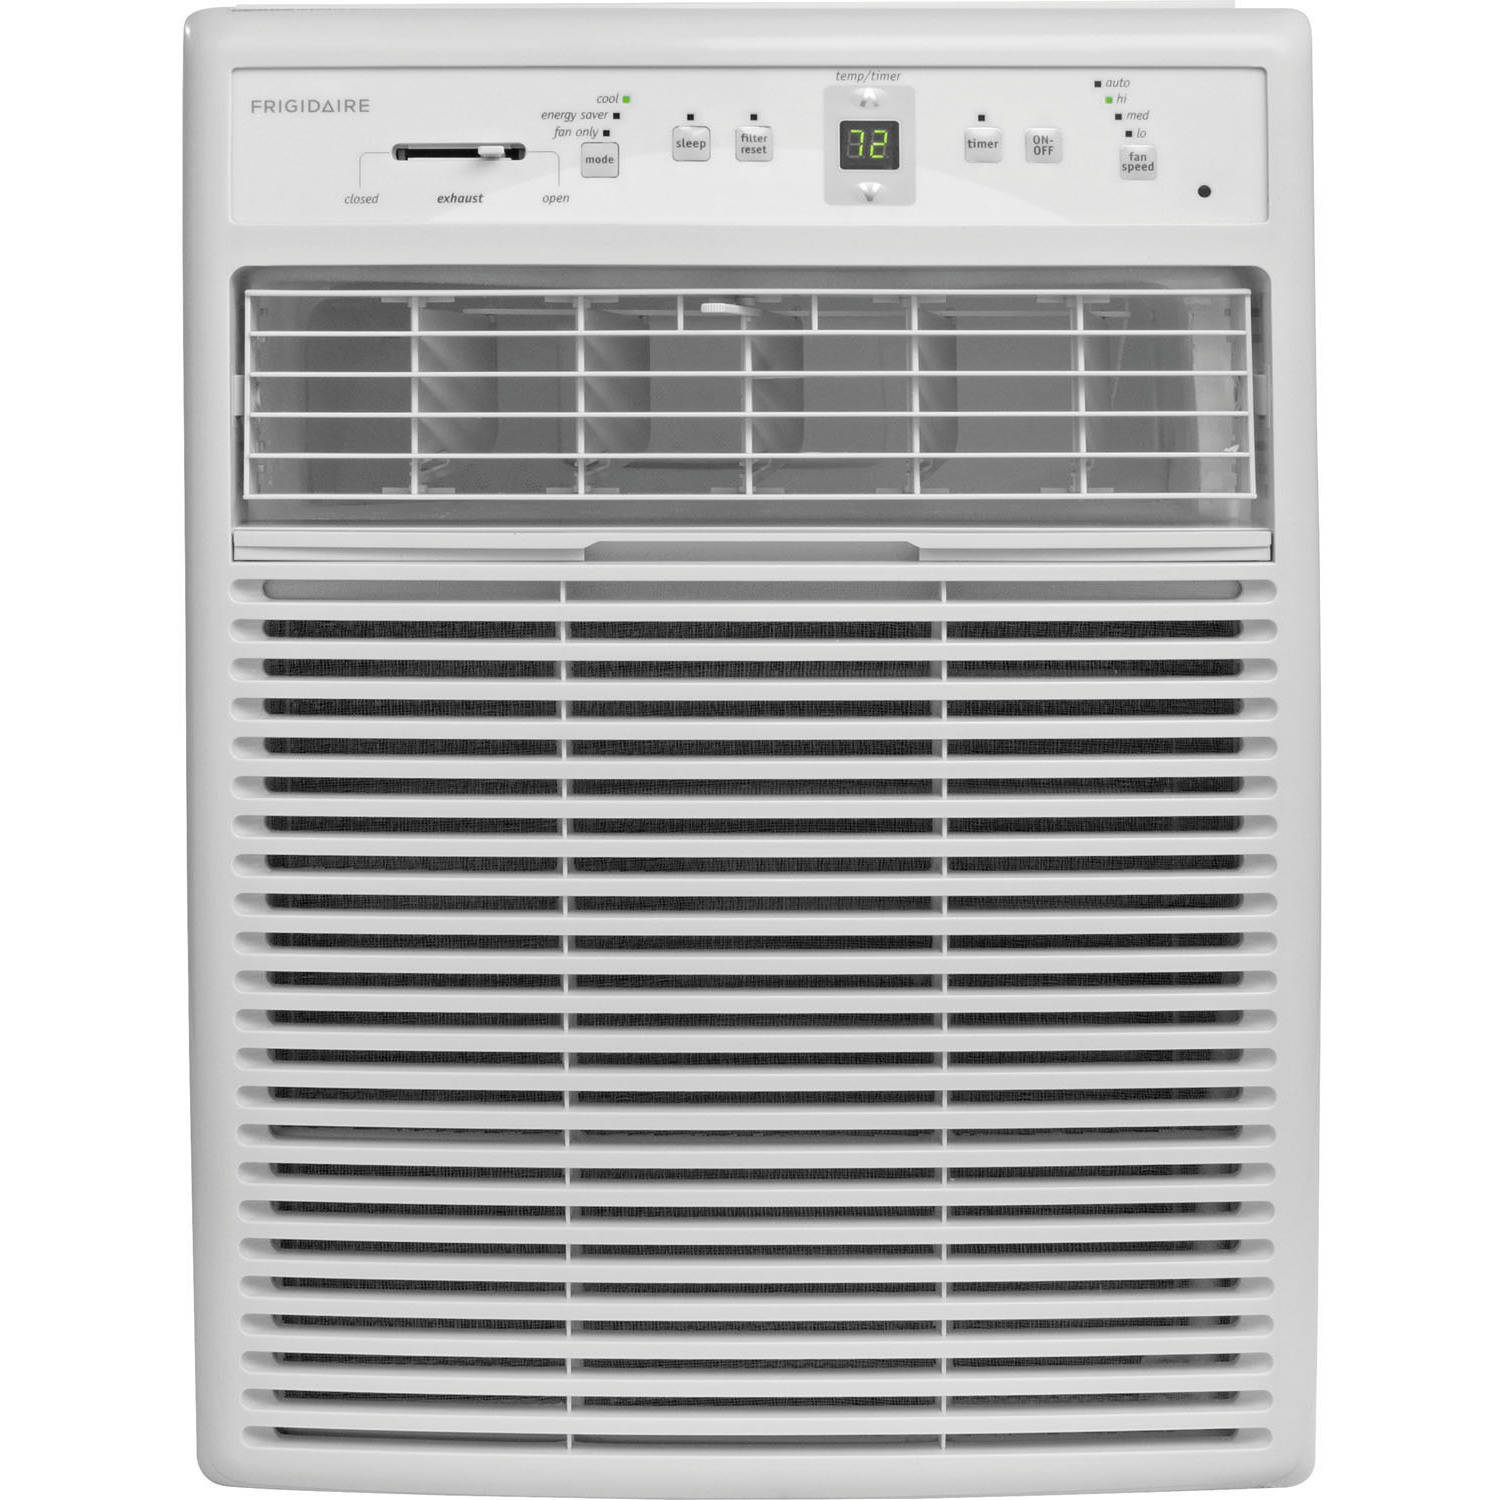 Frigidaire FFRS0822S1 8,000 BTU 115V Slider/Casement Room Air Conditioner with Full-Function Remote Control